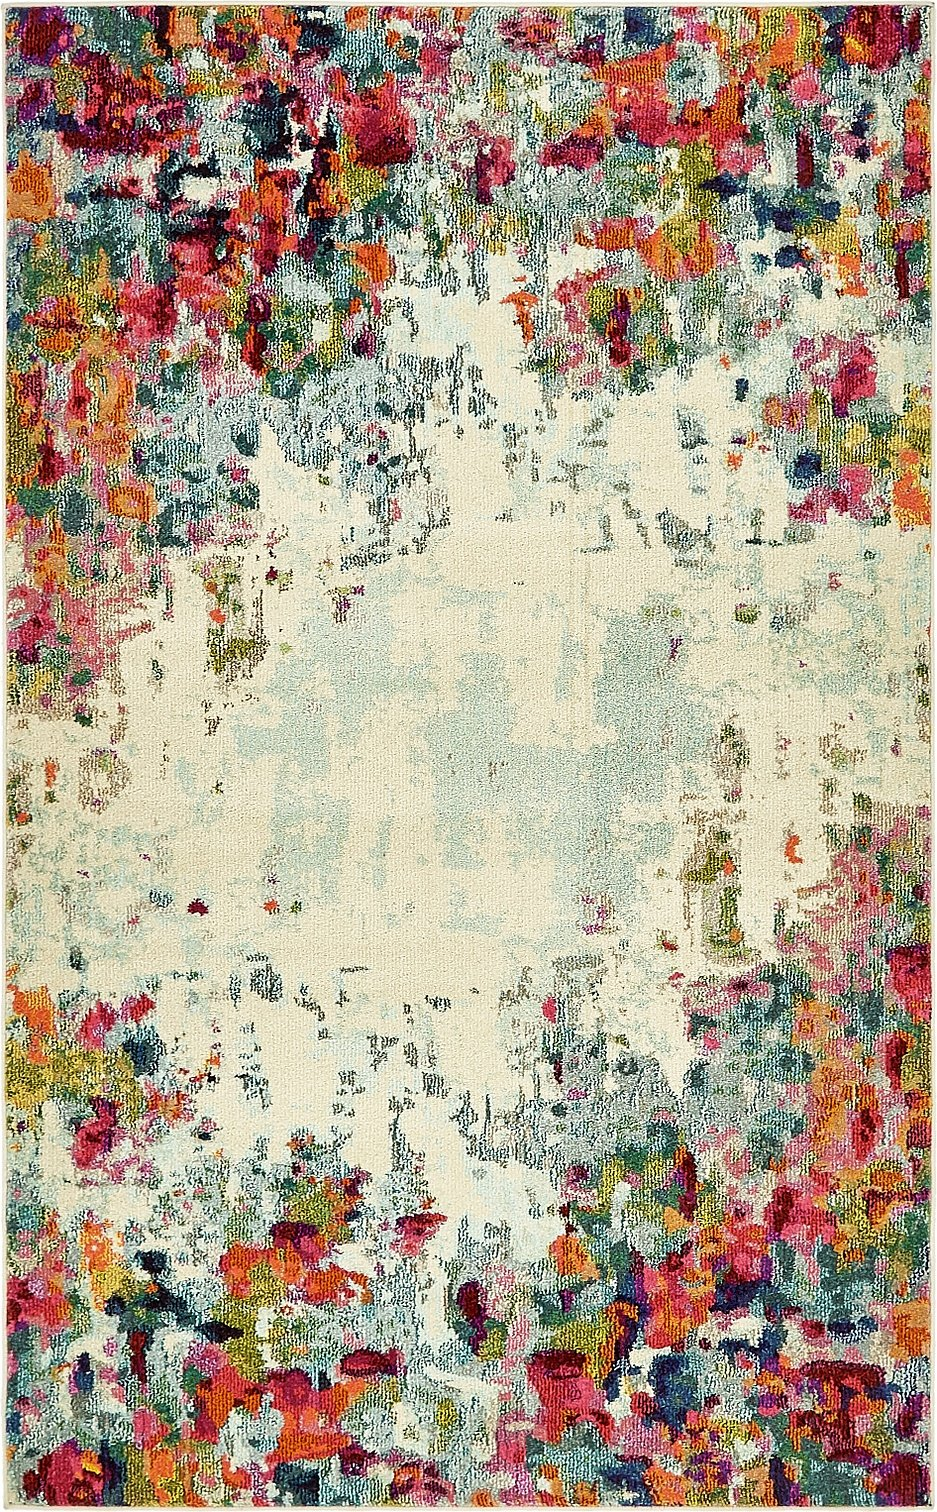 Island Collection Modern Contemporary Rugs Living Dinning Bedroom Area Rug 5' x 8', Multi